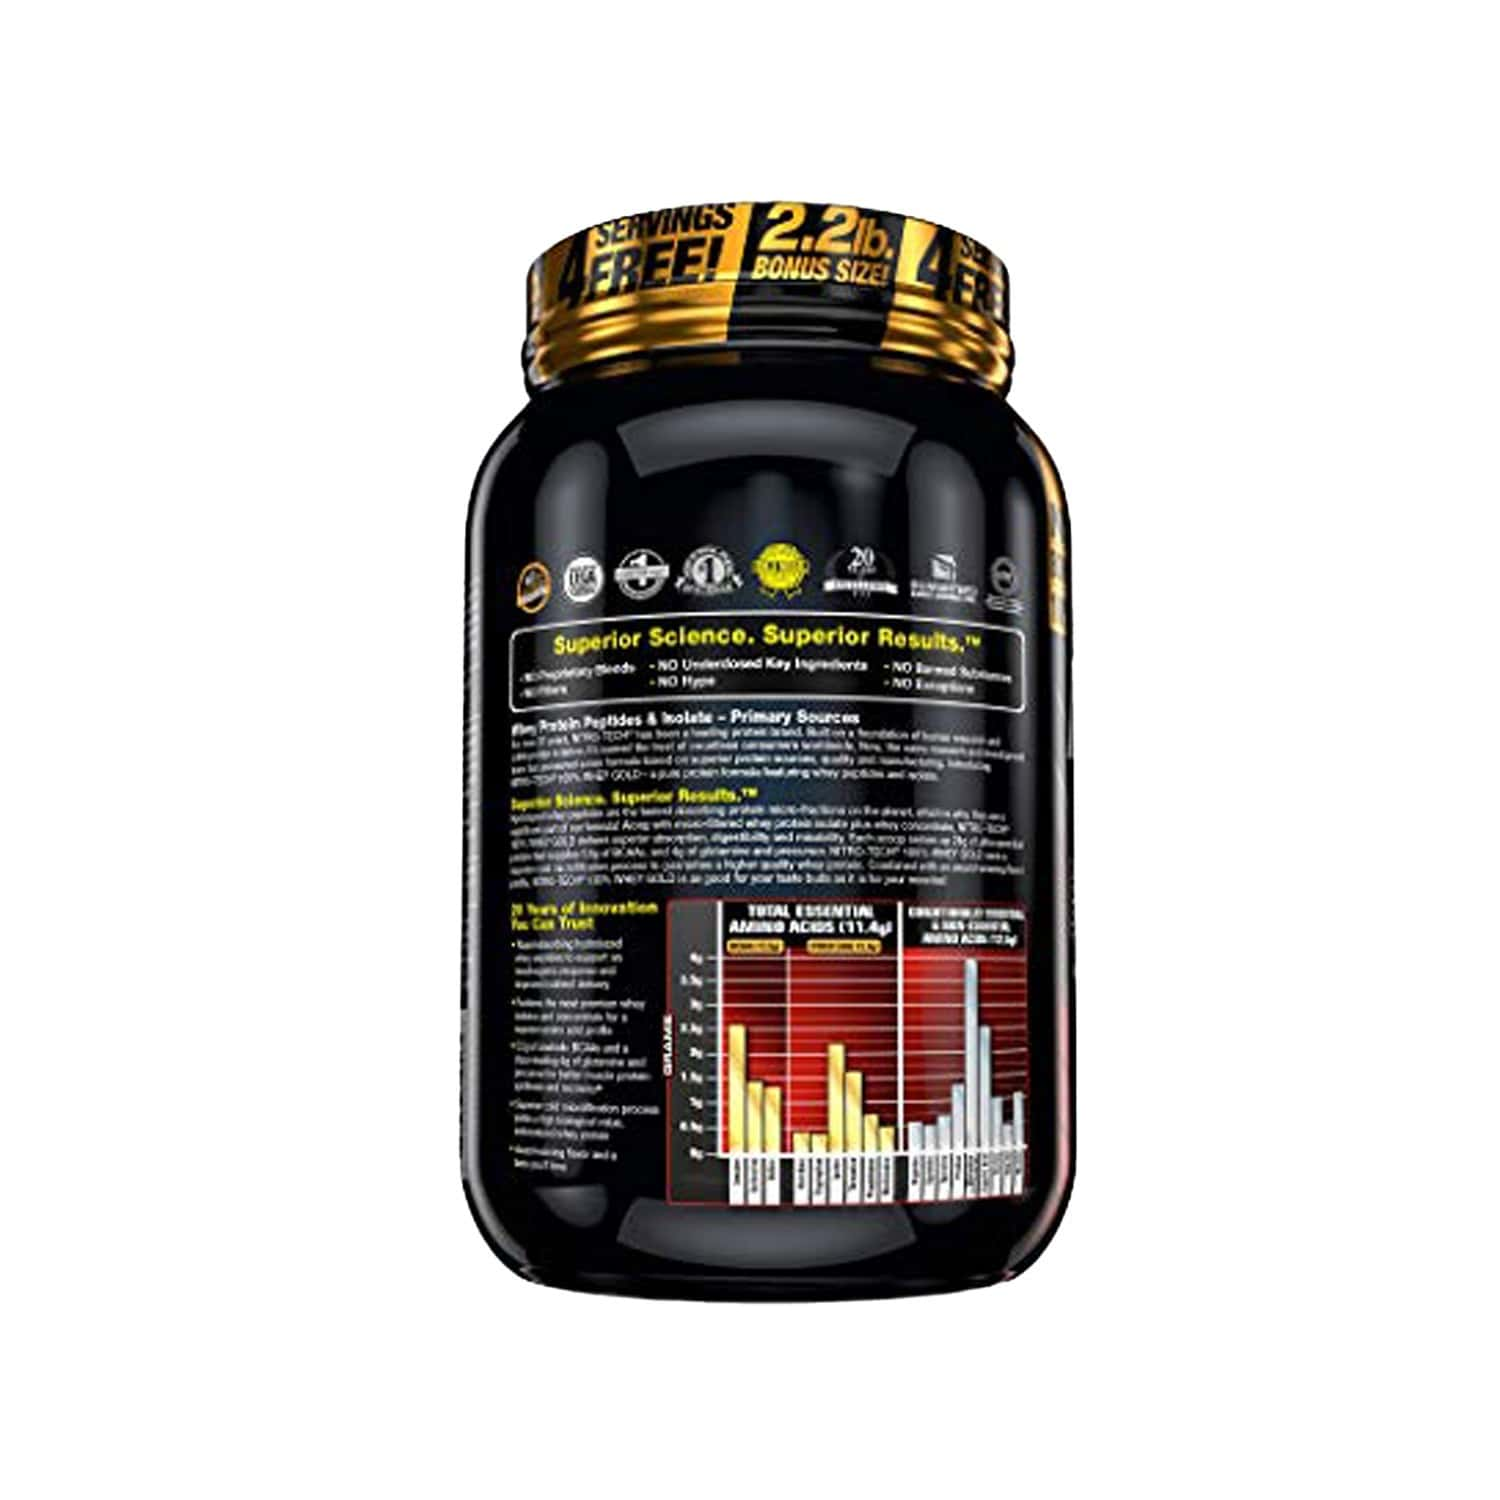 Muscletech Strawberry Protein Powder - 1200 Gm